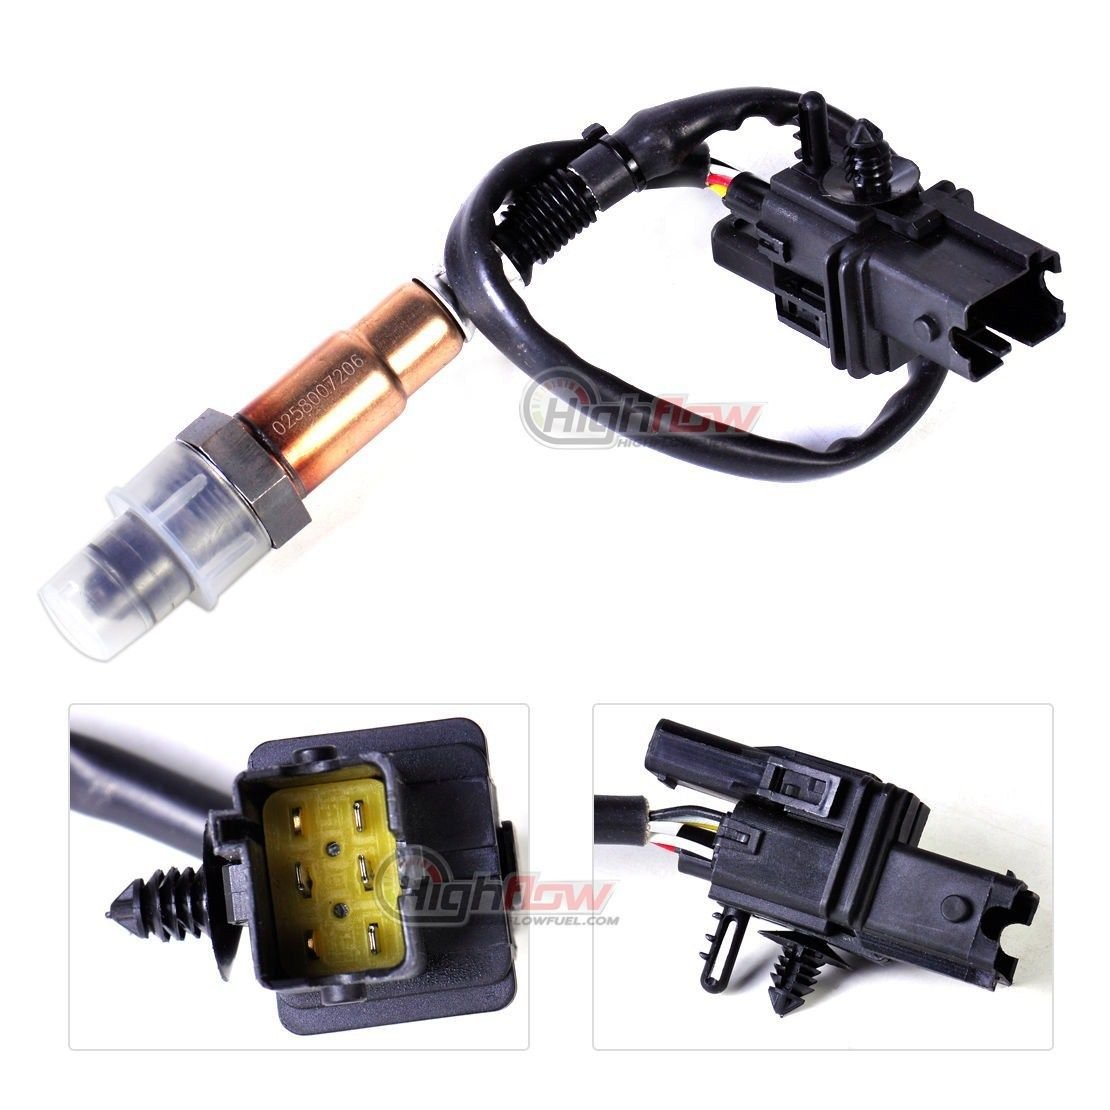 Hfp Wbs42 Lsu42 Wideband O2 Uego Sensor Replacement 2003 Saturn Ion For Bosch Replaces Plx Aem 30 2001 4100 0258007206 Automotive